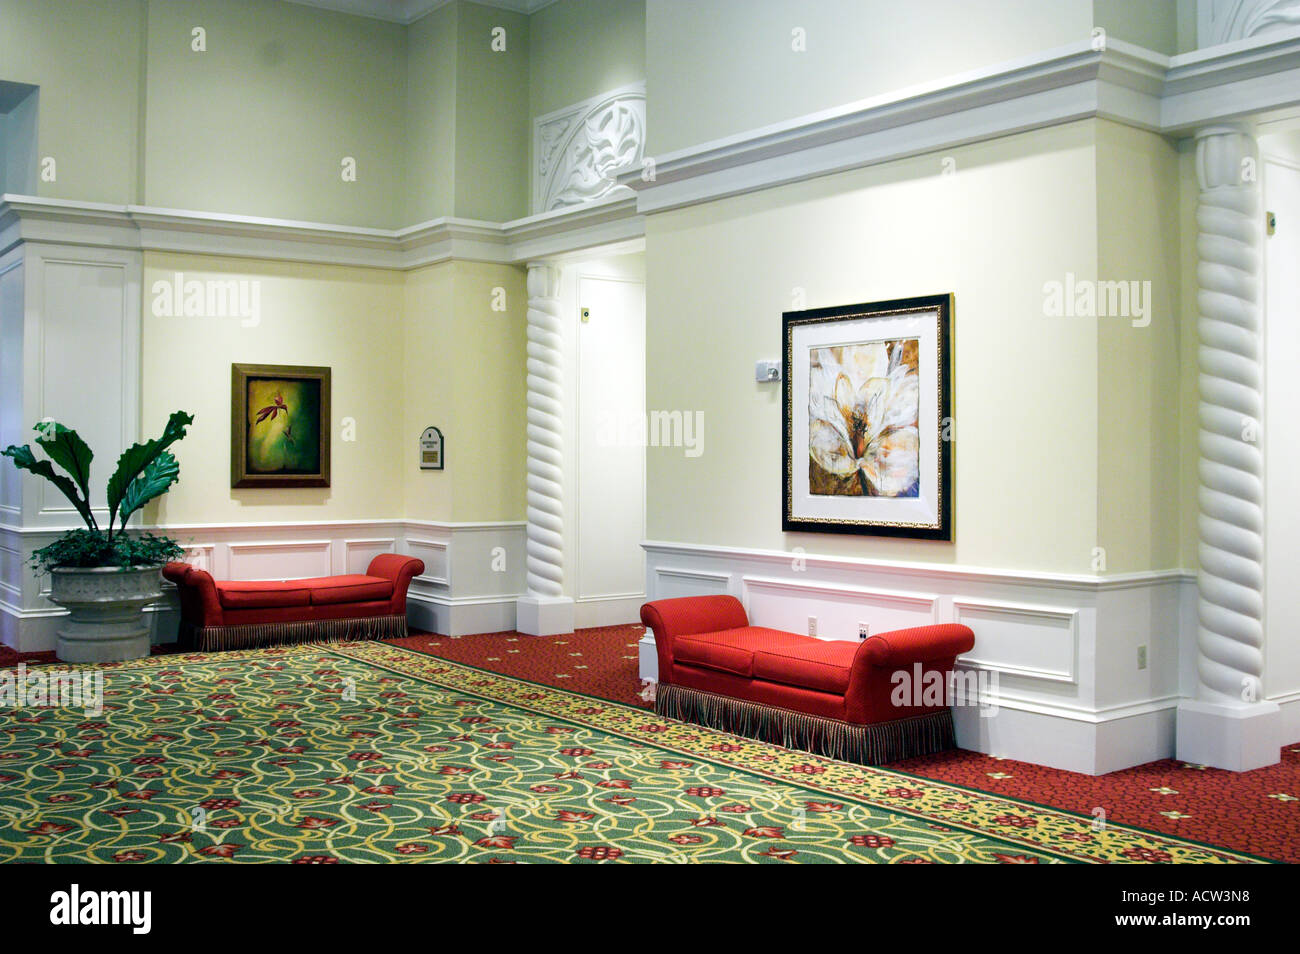 . Interior hallway decor at the J W Marriott Resort in Orlando Florida